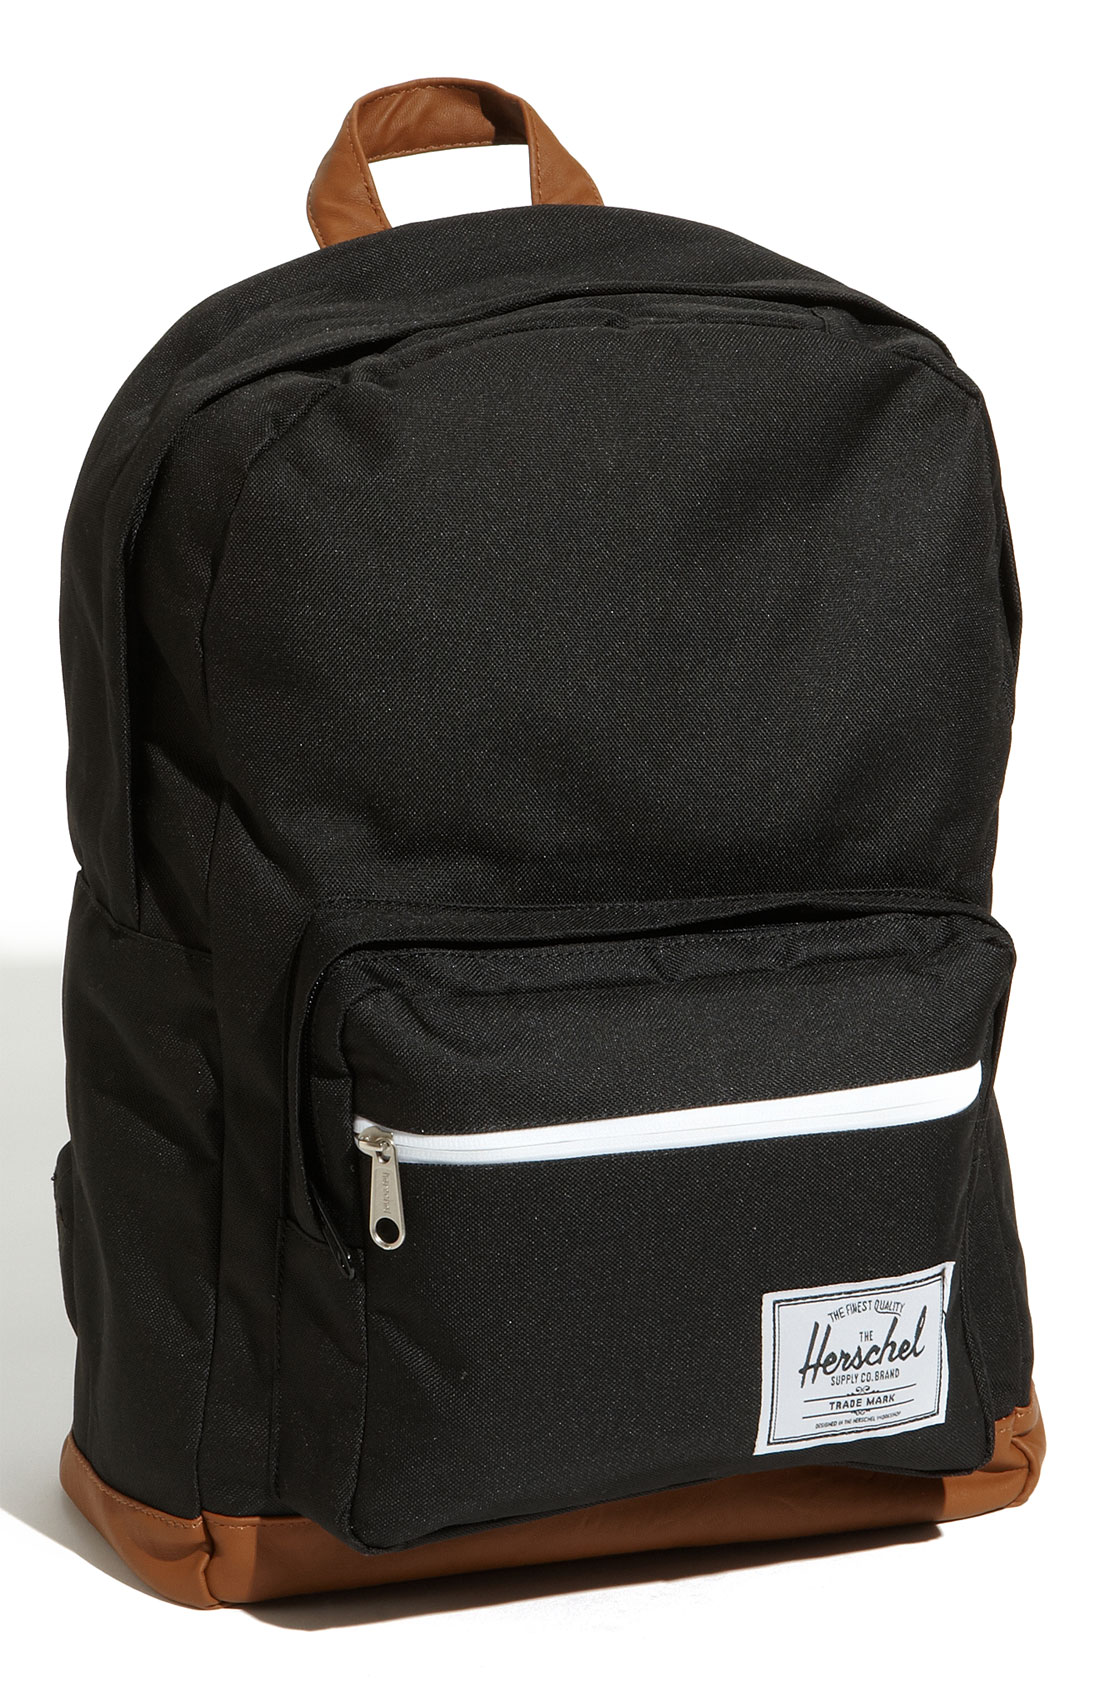 Mens Backpacks For School cHUIefpN